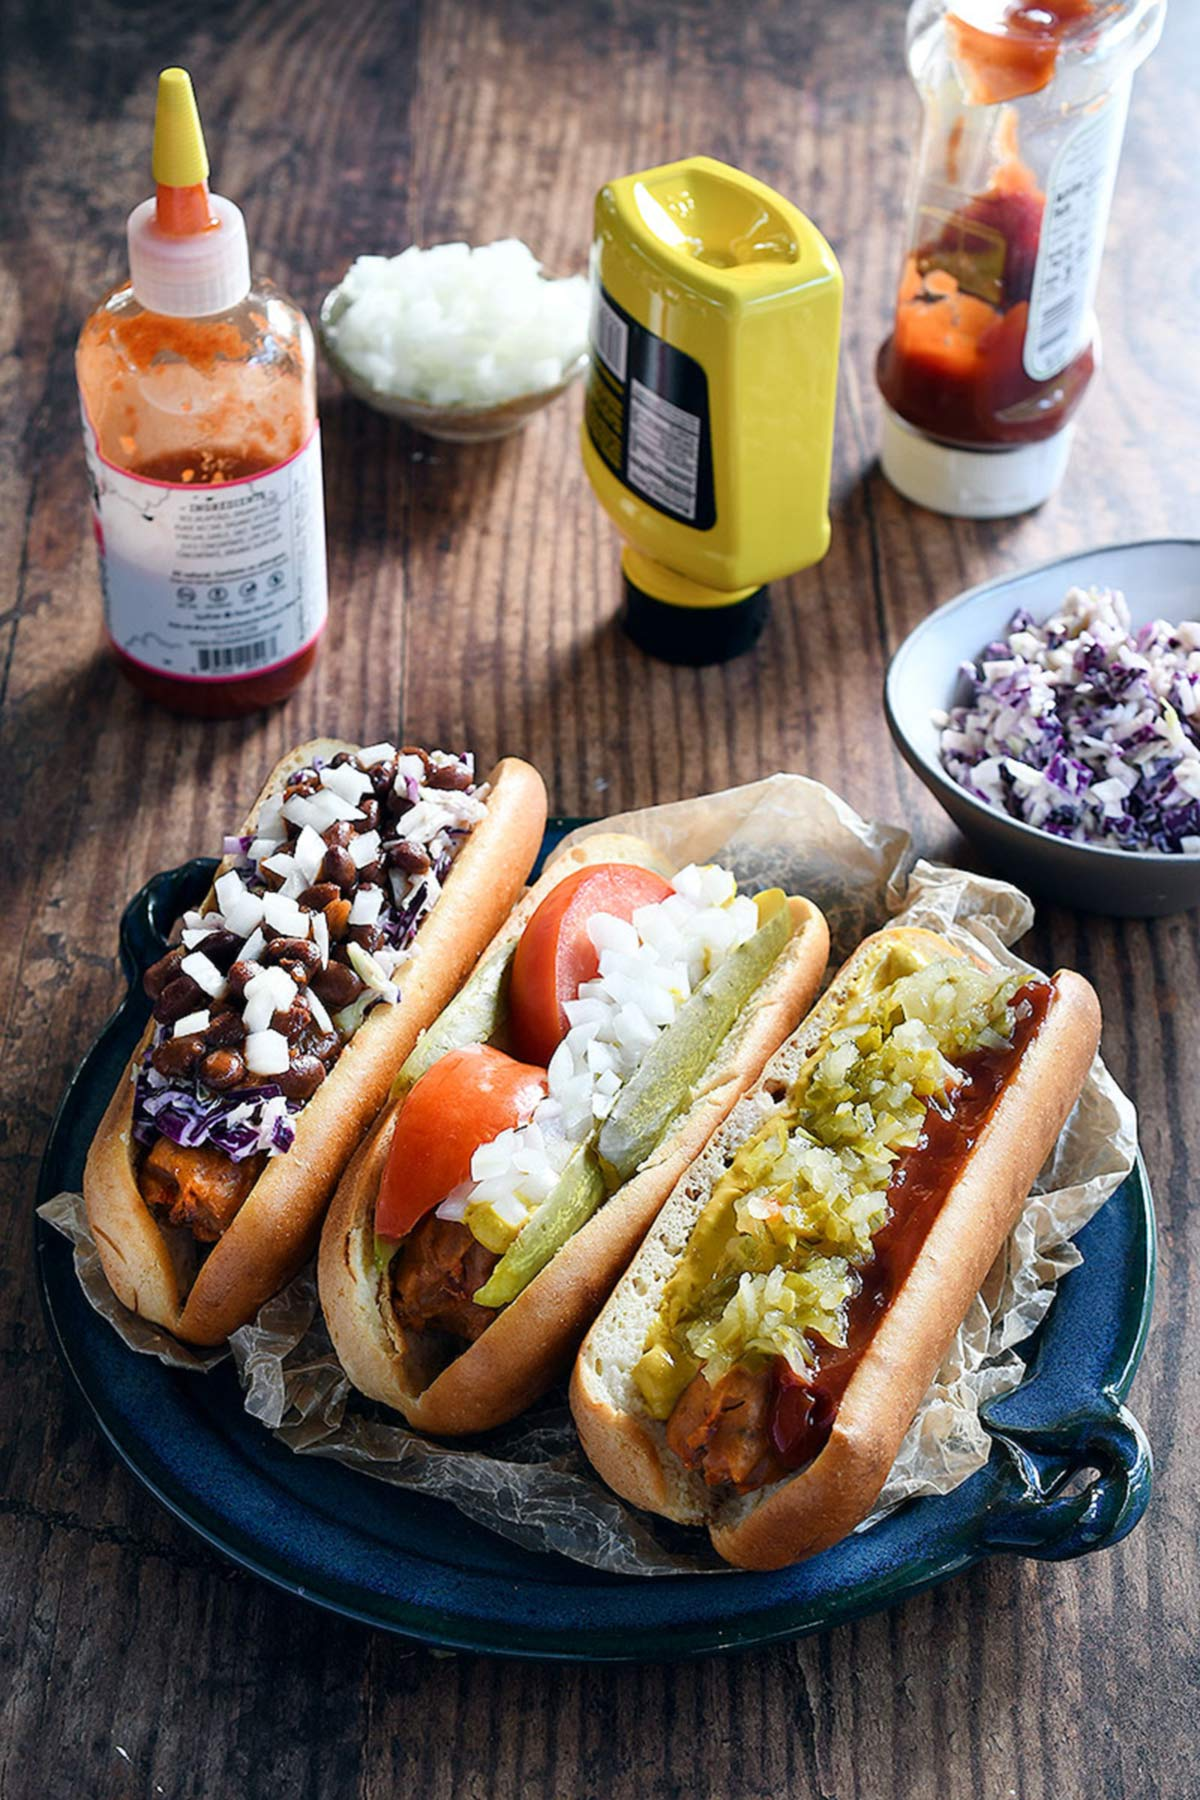 vegan hot dogs with toppings